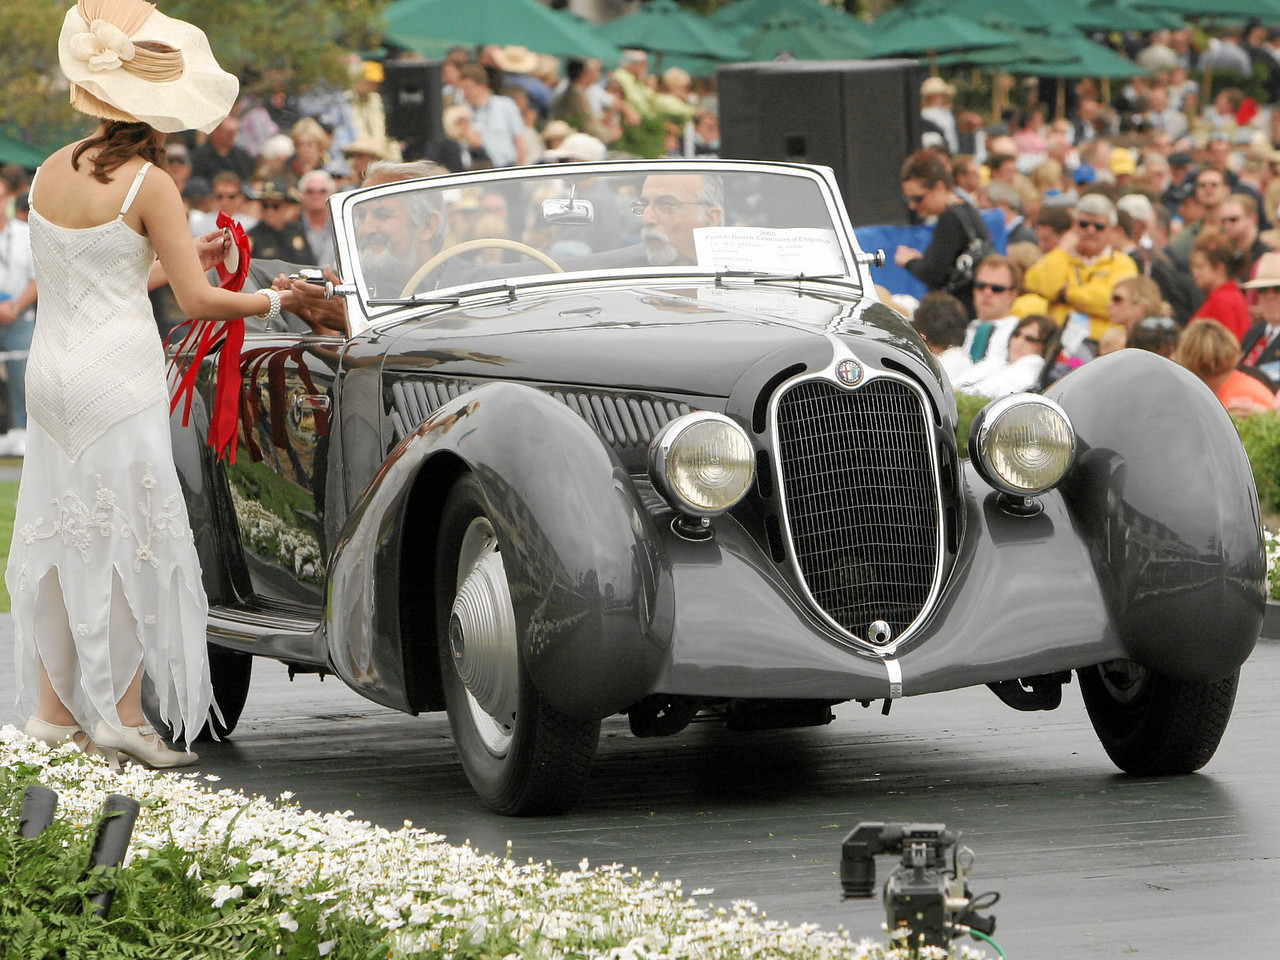 1937 Alfa Romeo 8C 2900B Pinin Farina Cabriolet owned by Lawrence Auriana from Stamford, Connecticut 2nd Class E-5 (Alfa Romeo 8C 2900)